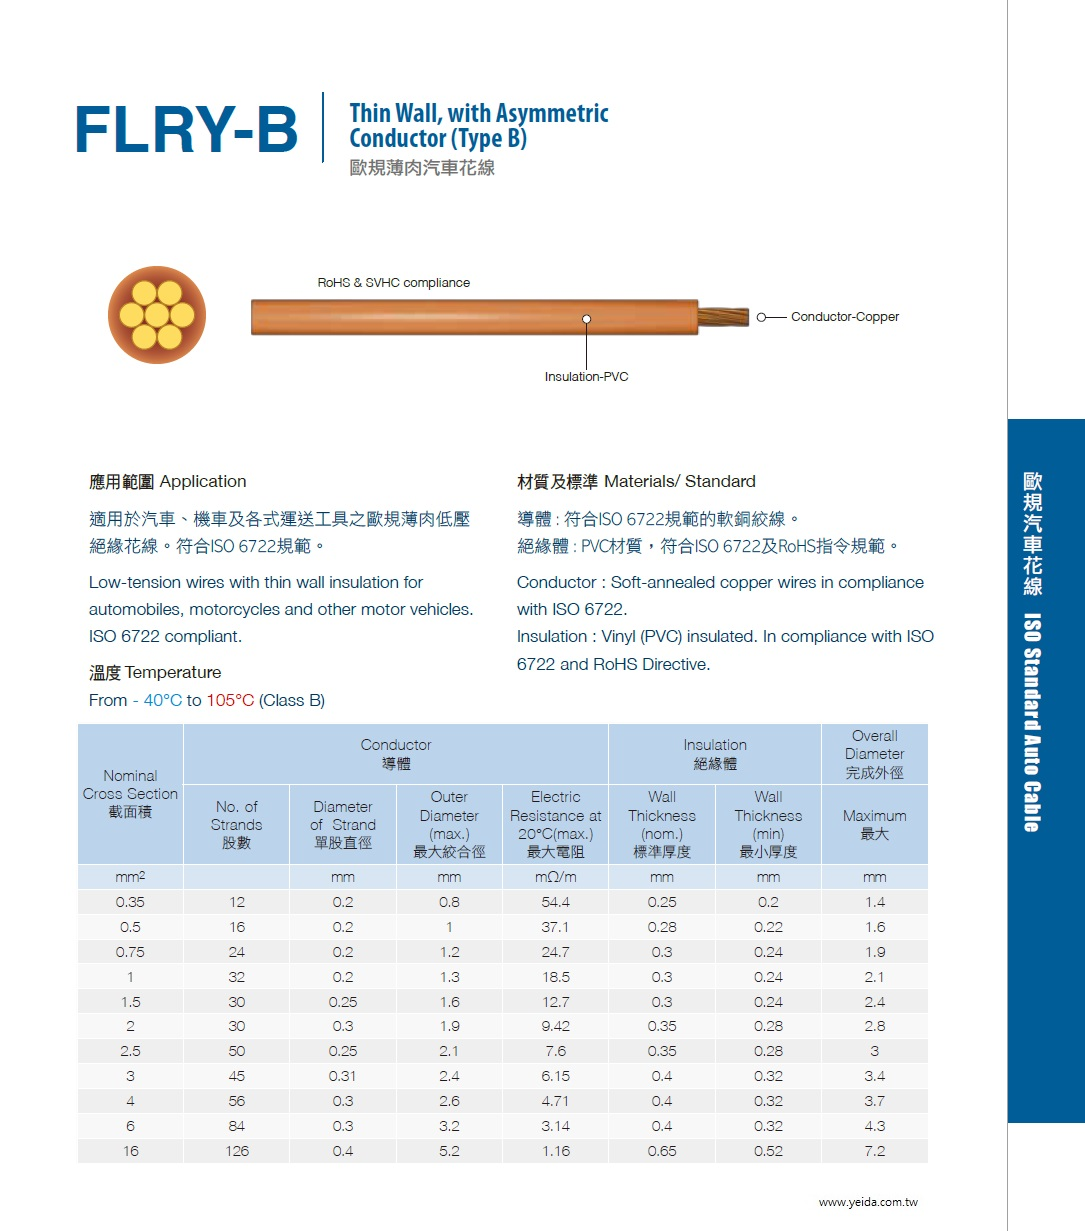 FLRY-B Thin Wall, with Asymmetric Conductor (Type B) 符合ISO 6722 PVC ISO 6722及RoHS指令規範歐規薄肉汽車花線產品圖